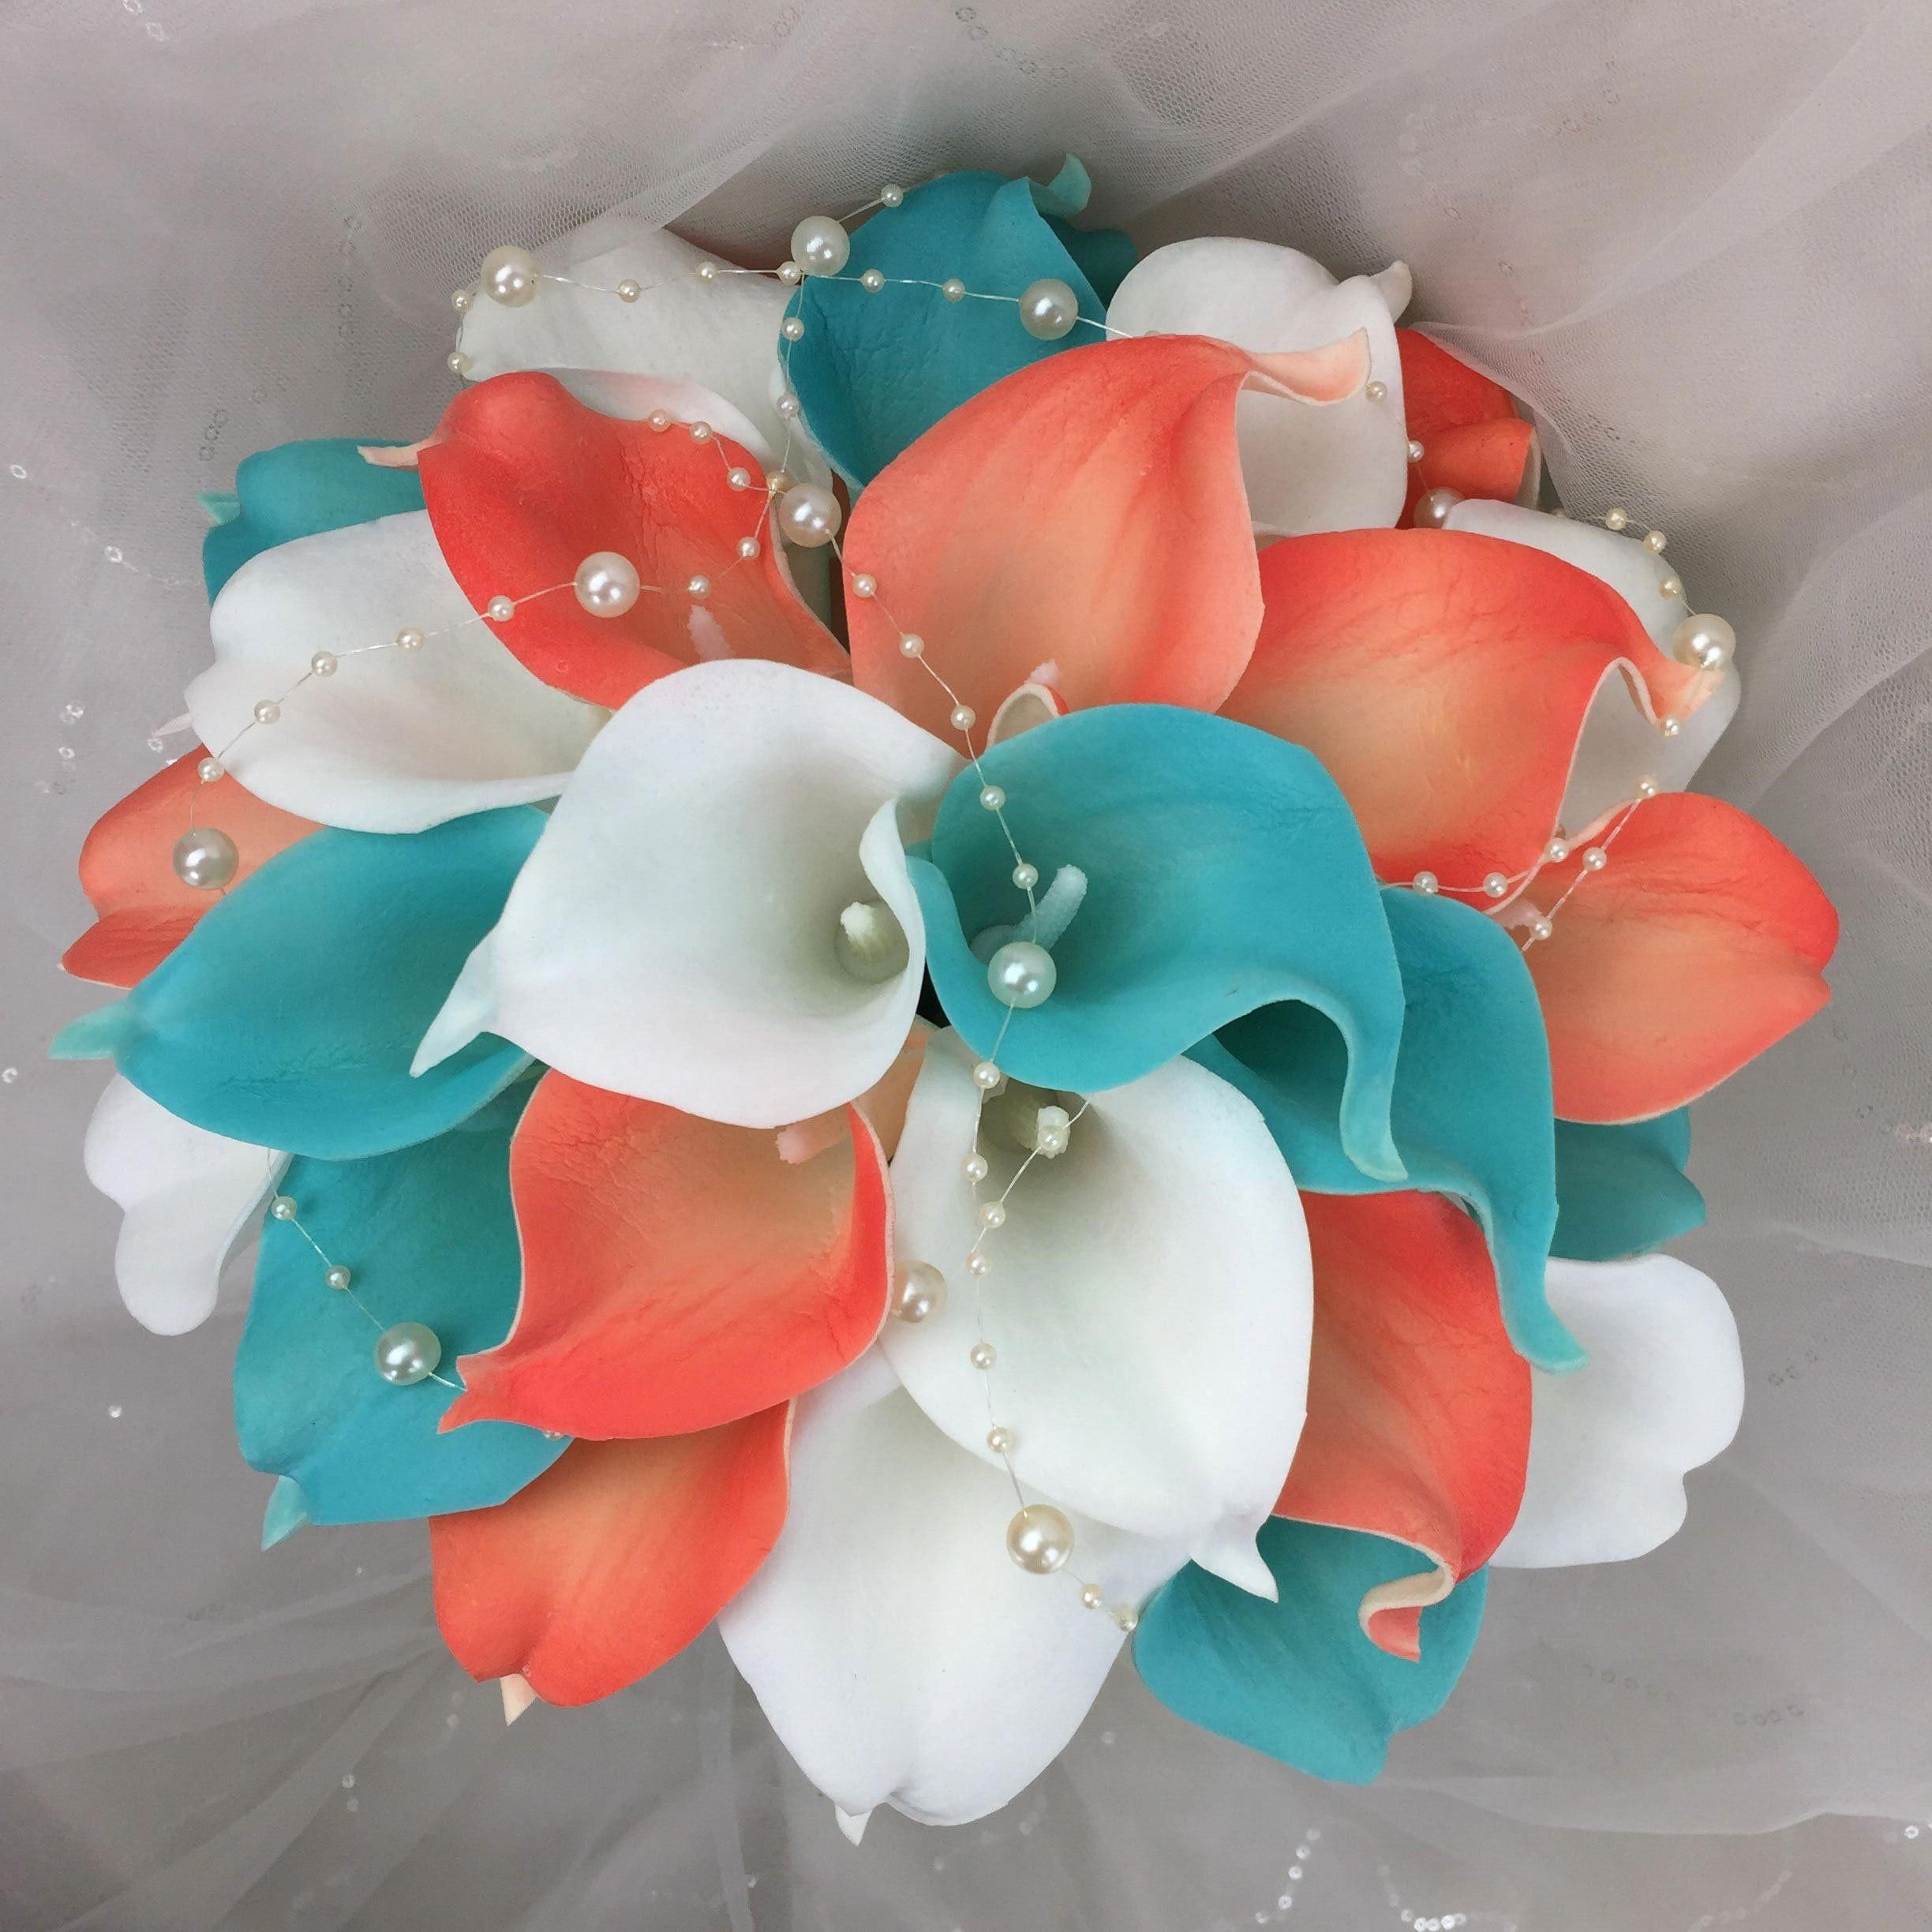 Lily Garden Real Touch Calla Lily Coral and White and Carnation Turquoise Flowers Wedding Bouquet (Wedding Bouquet Lilies) #weddingflowerbouquets #turquoisecoralweddings